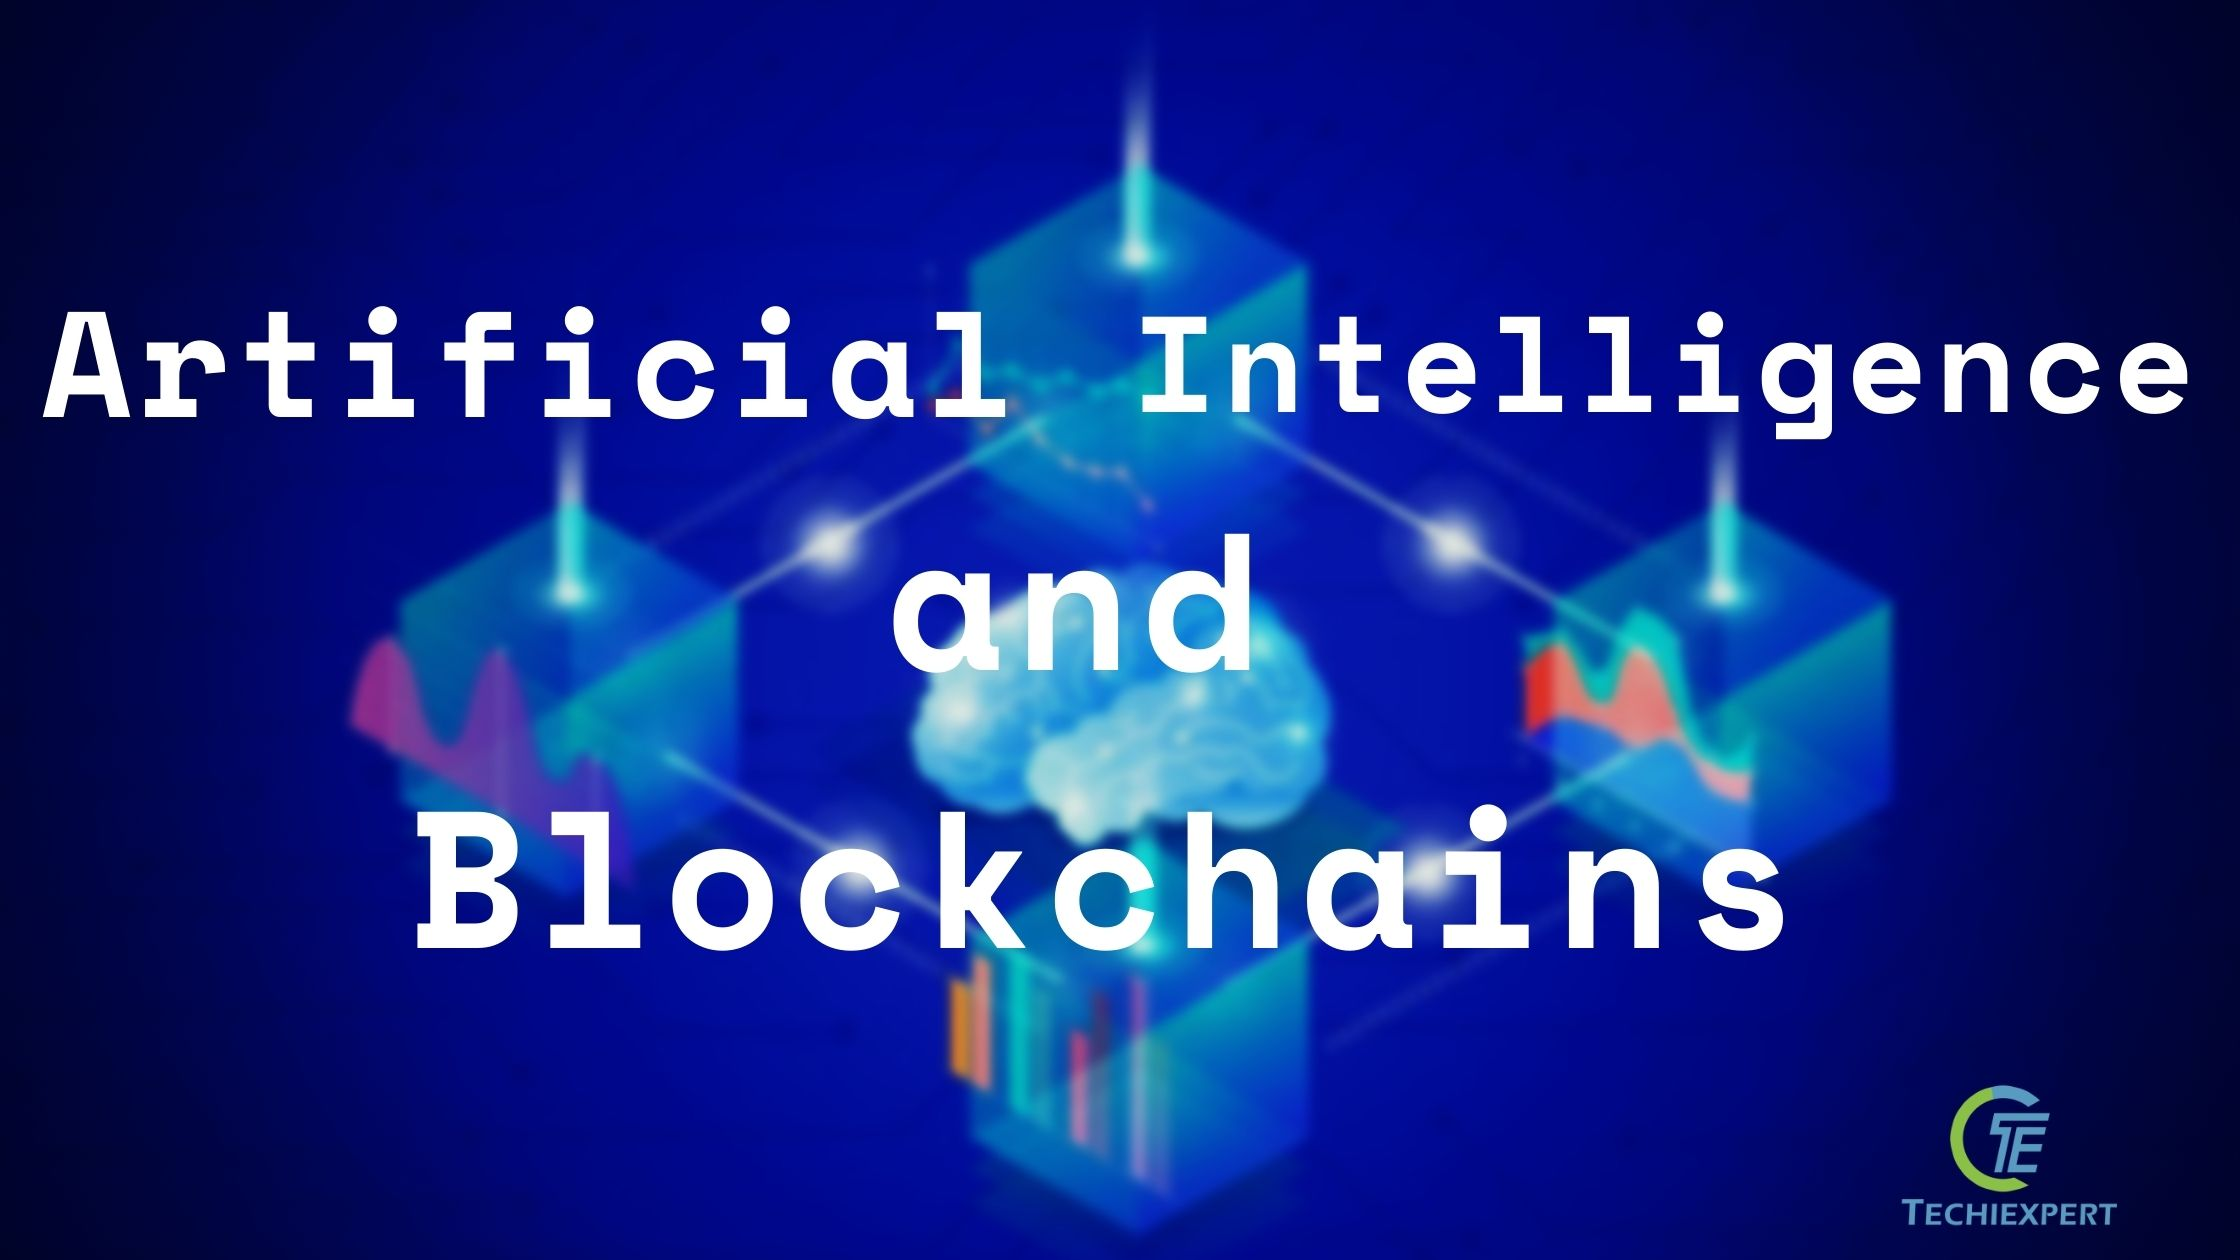 Artificial Intelligence and  Block chains in decentralized cloud